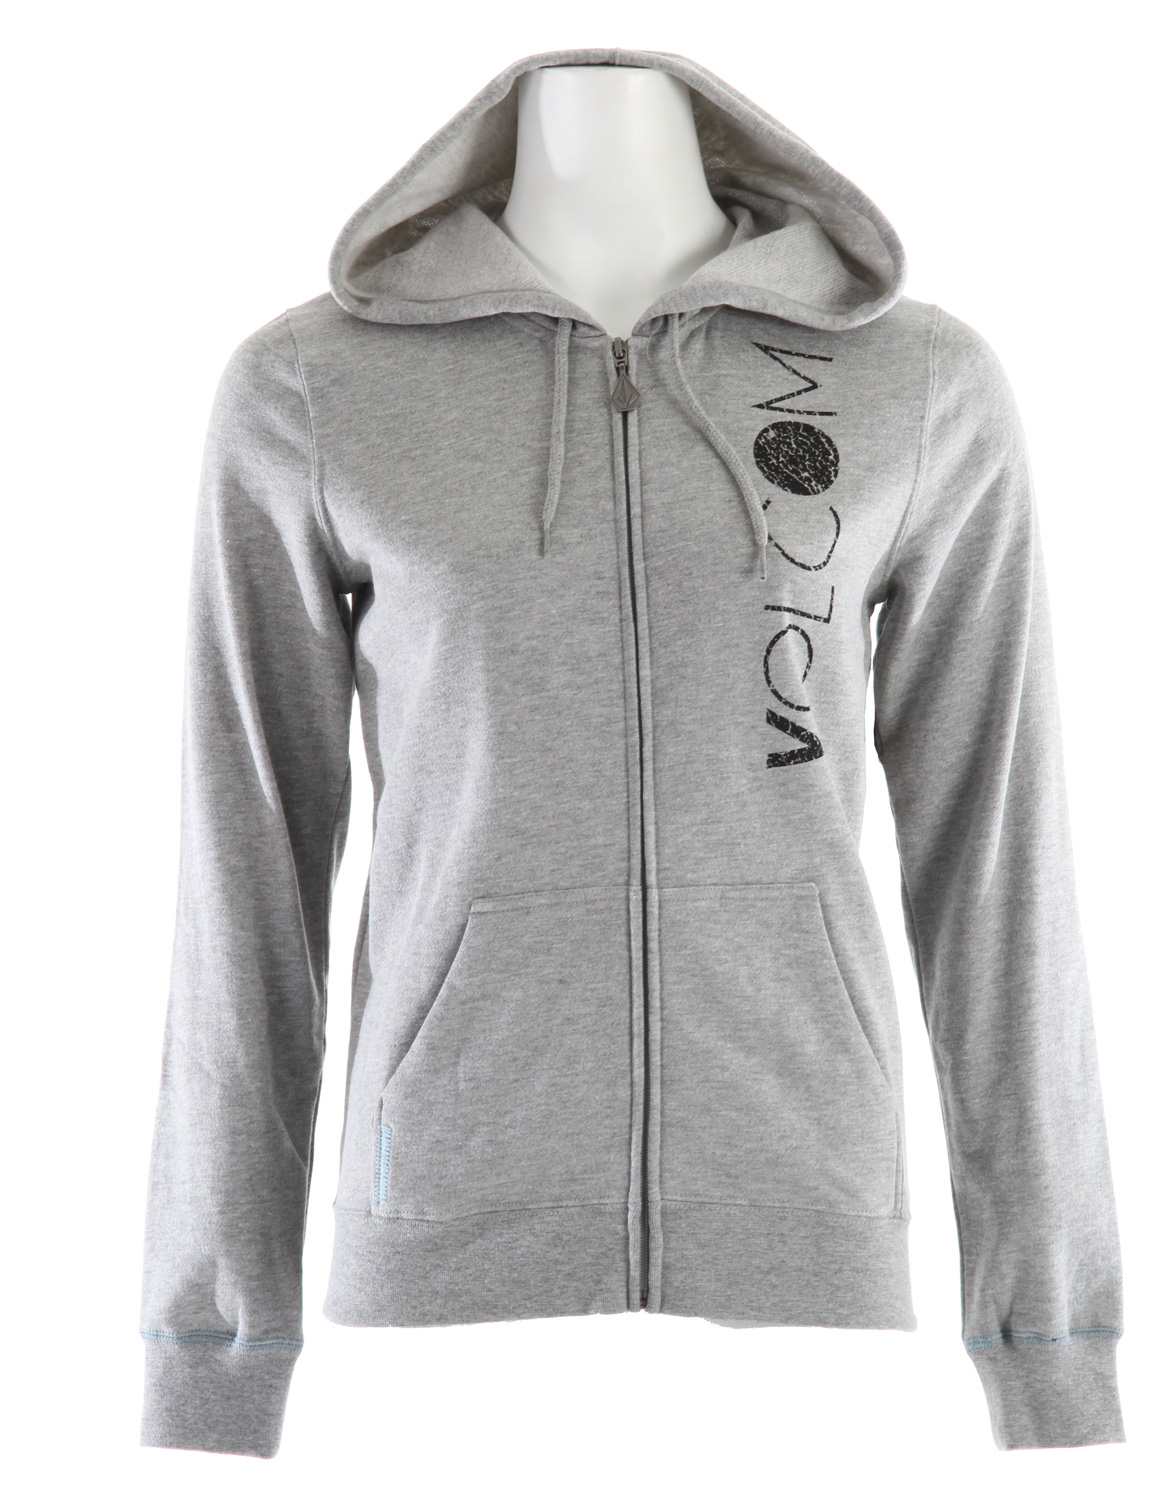 "Surf Key Features of the Volcom Niiice Stones Standard Zip Hoodie: 60% Cotton / 40% Polyester Fleece, 240gm. Hooded zip fleece with contrast stitching at sleeve cuffs and pocket. Detailed with logo eyelets, Stone zipper pull, Volcom waterbase ink screen at front and printed appliques at back. 25"" length. - $37.95"